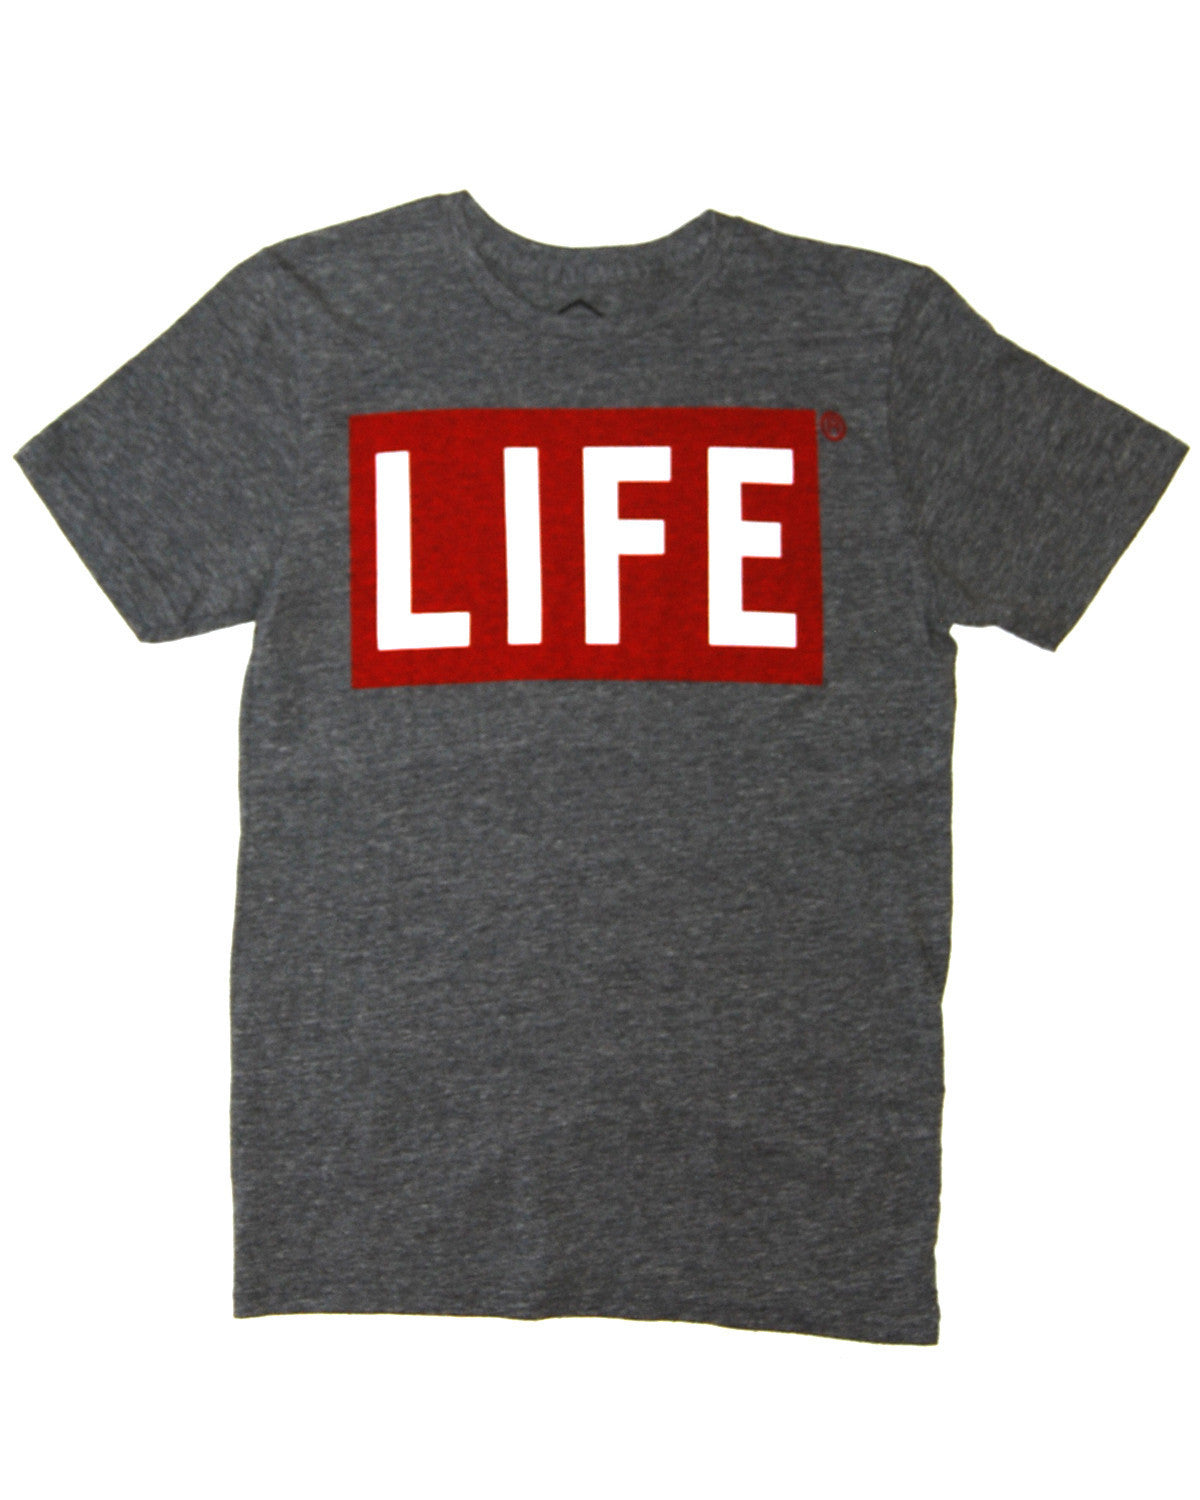 Altru Apparel - Life 2 Color Logo Men's Tee, Grey Triblend - The Giant Peach